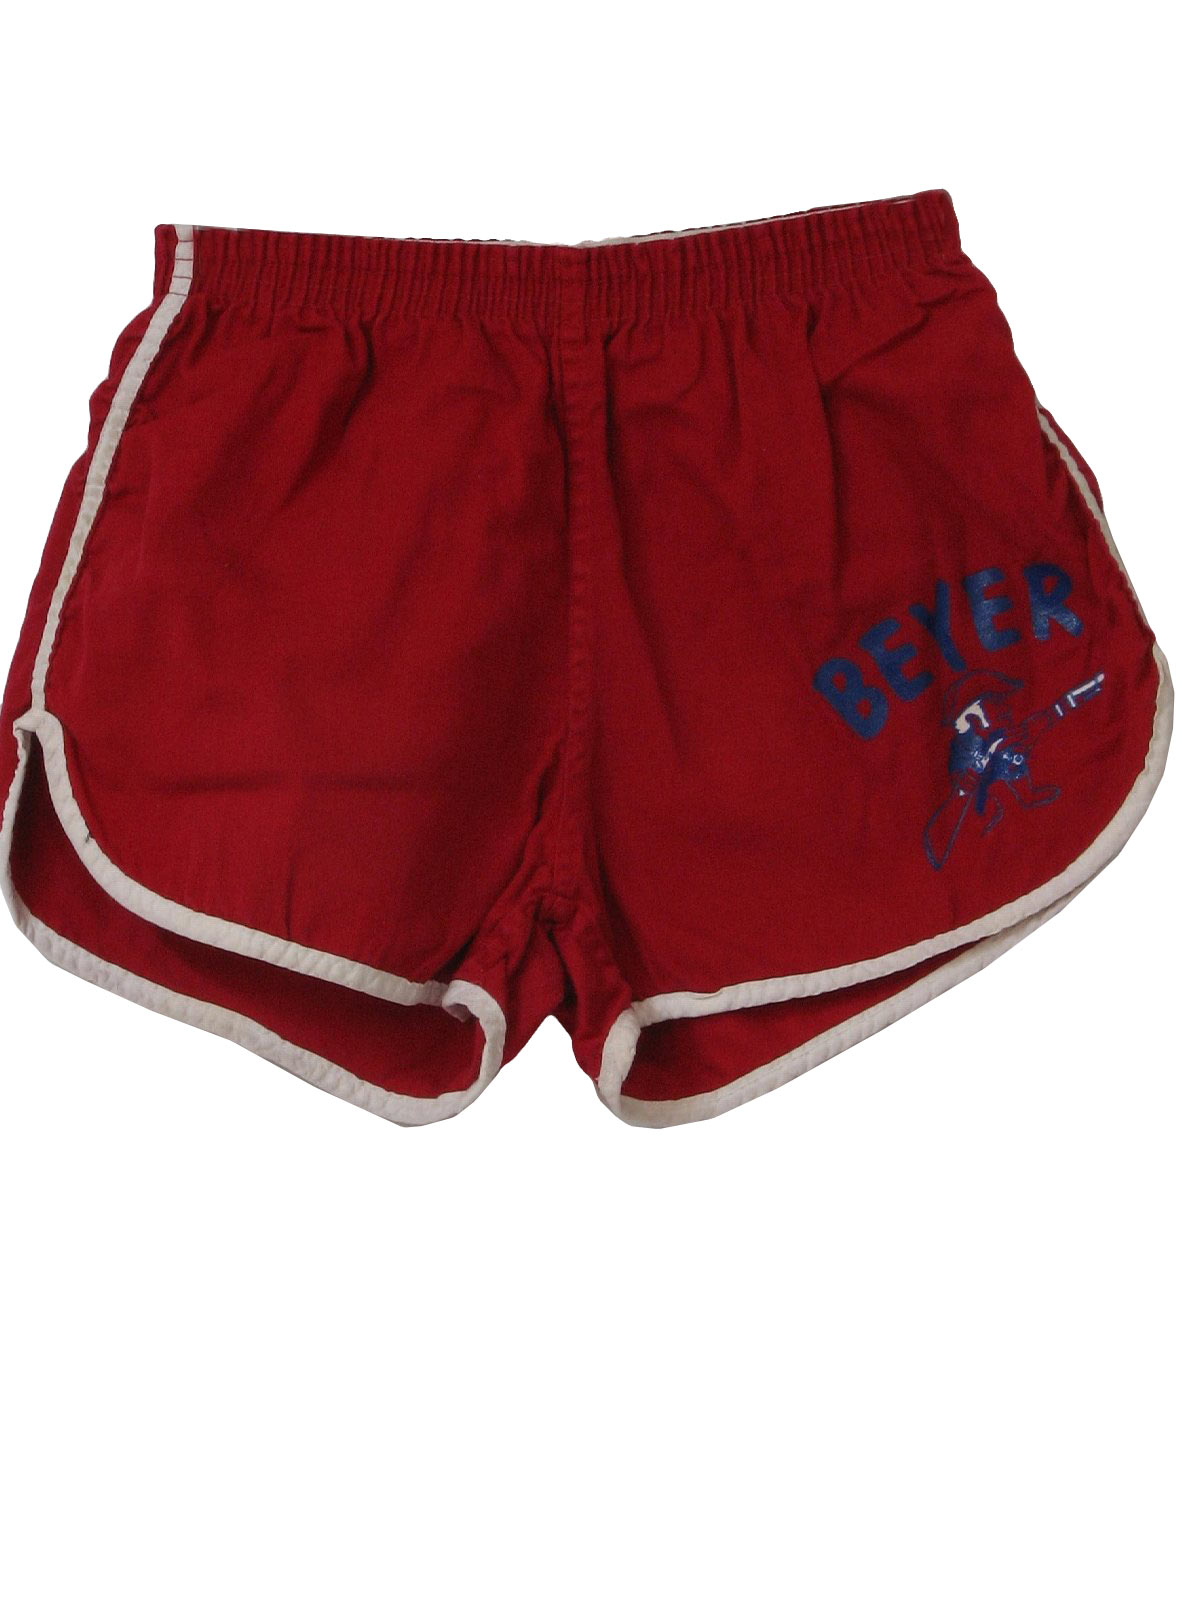 Retro 70s Shorts 70s Champion Mens Red White And Blue